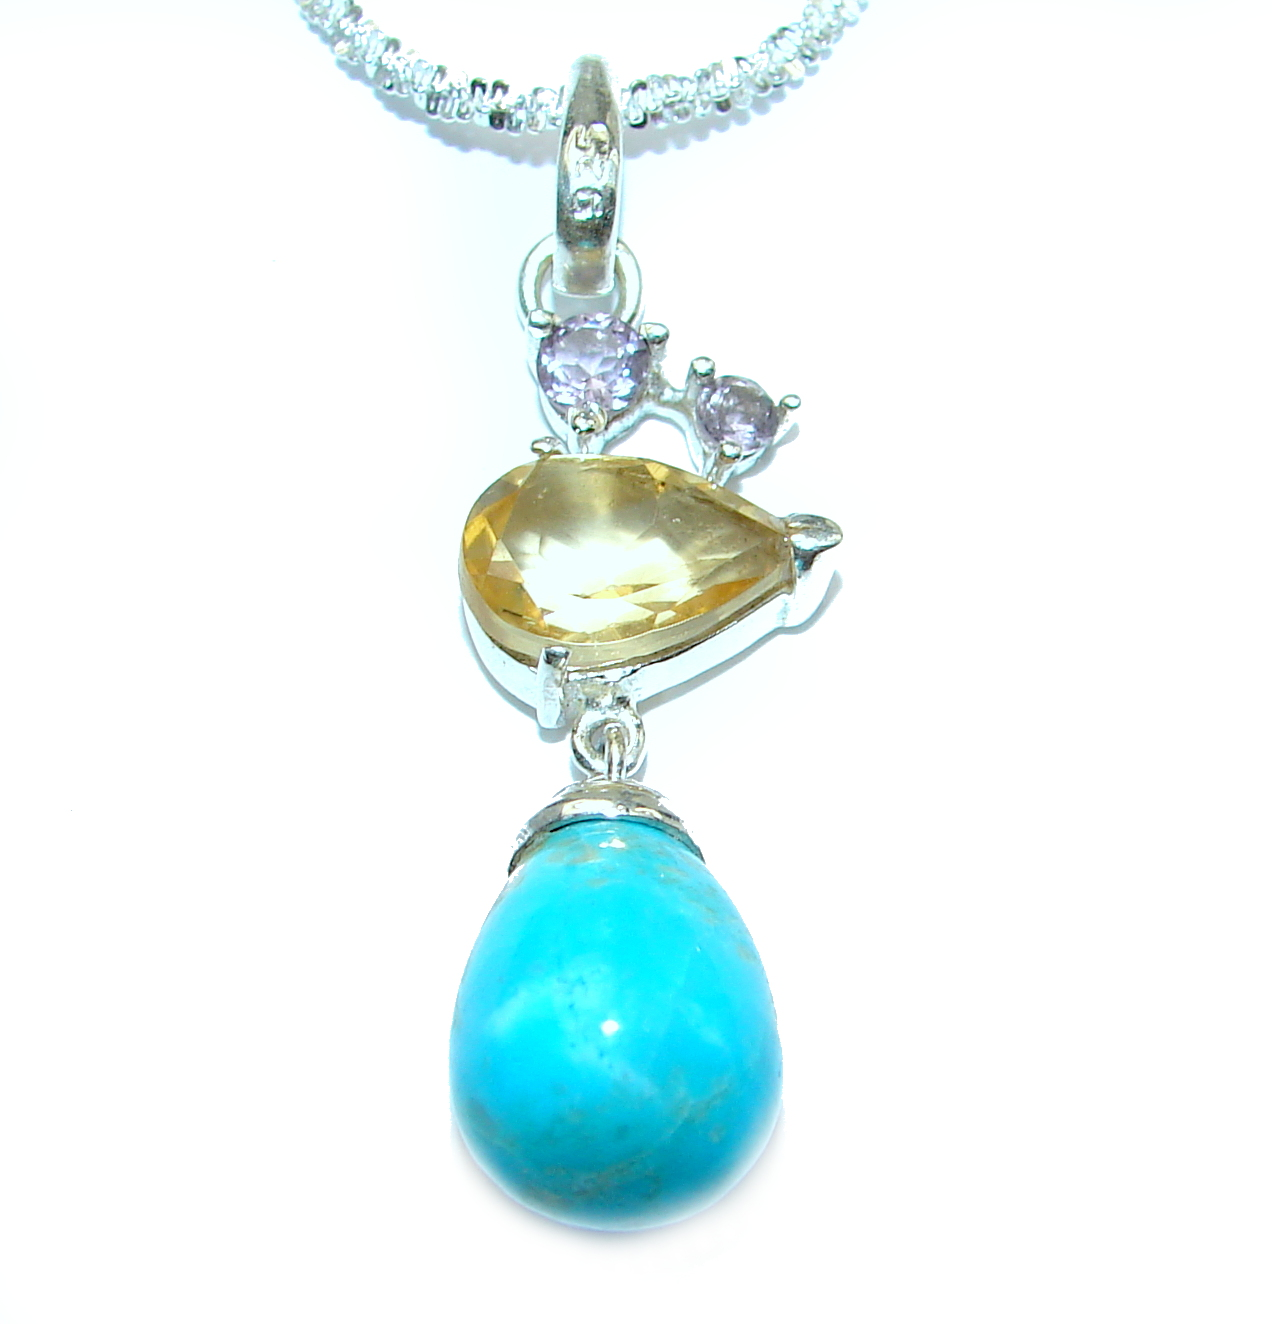 Sleeping Beauty Turquoise .925 Sterling Silver handcrafted necklace